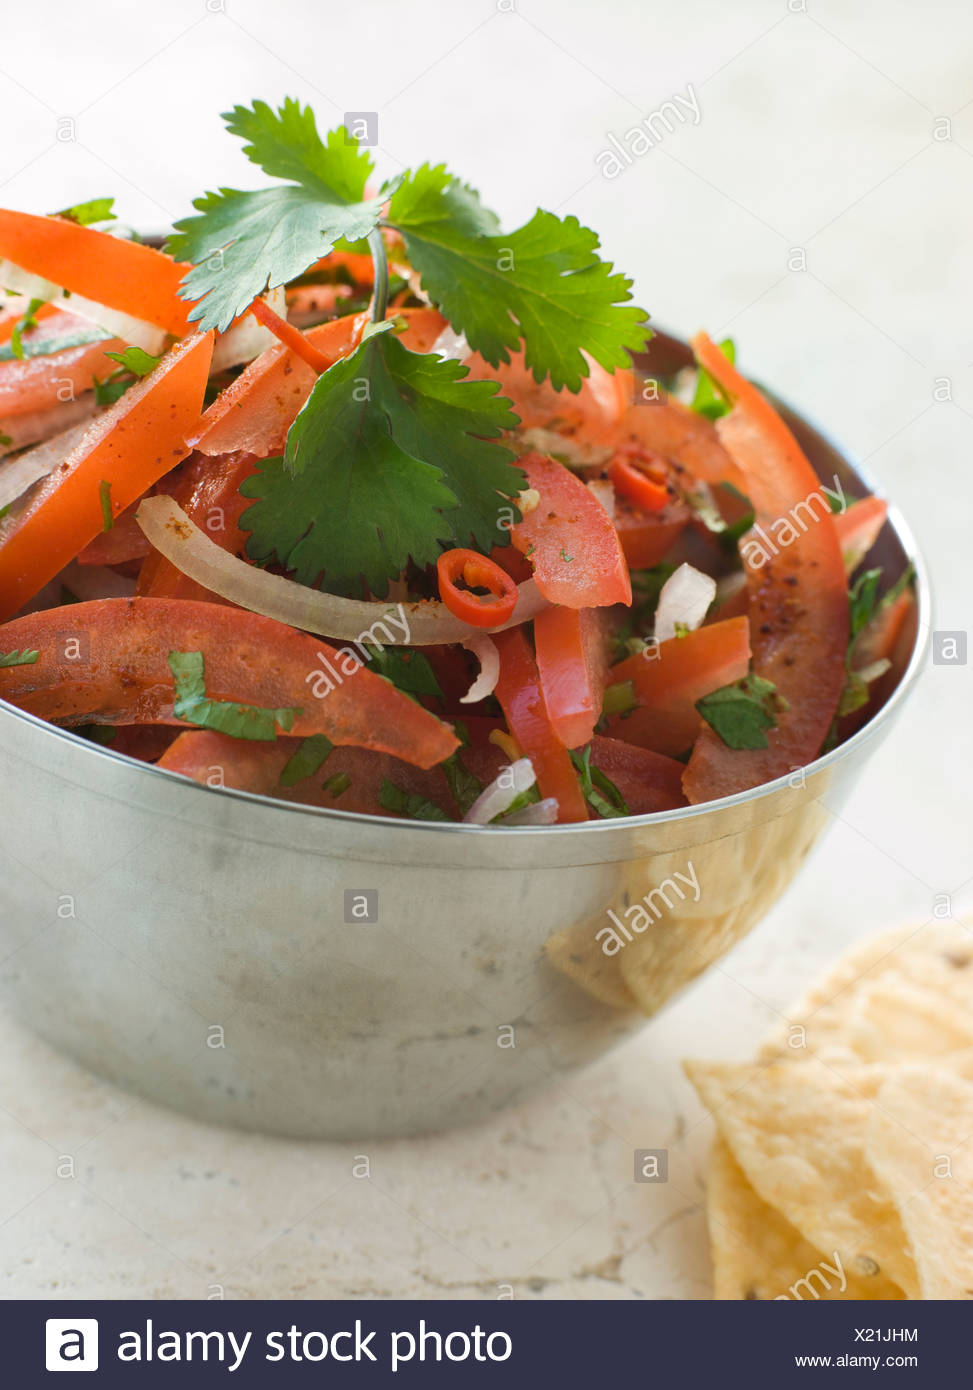 Dish of Tomato Red Onion and Coriander Relish - Stock Image